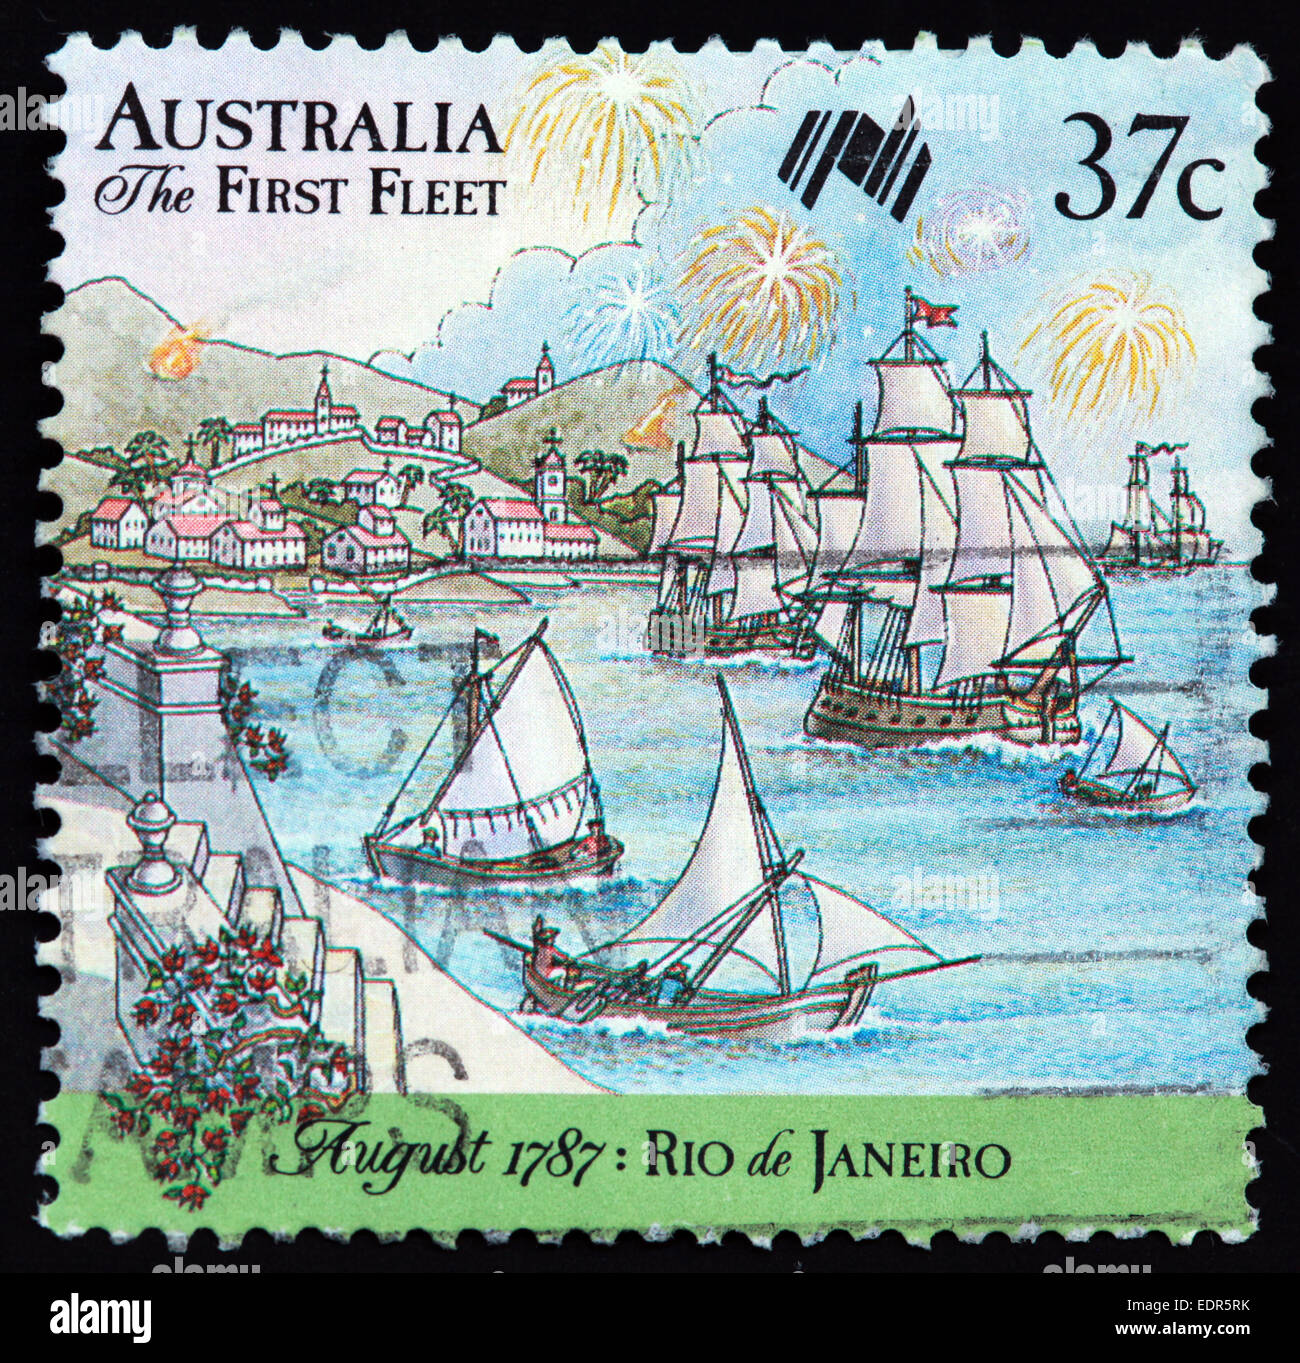 Used and postmarked Australia / Austrailian Stamp 37c The First Fleet August 1787 Rio de Janeiro - Stock Image